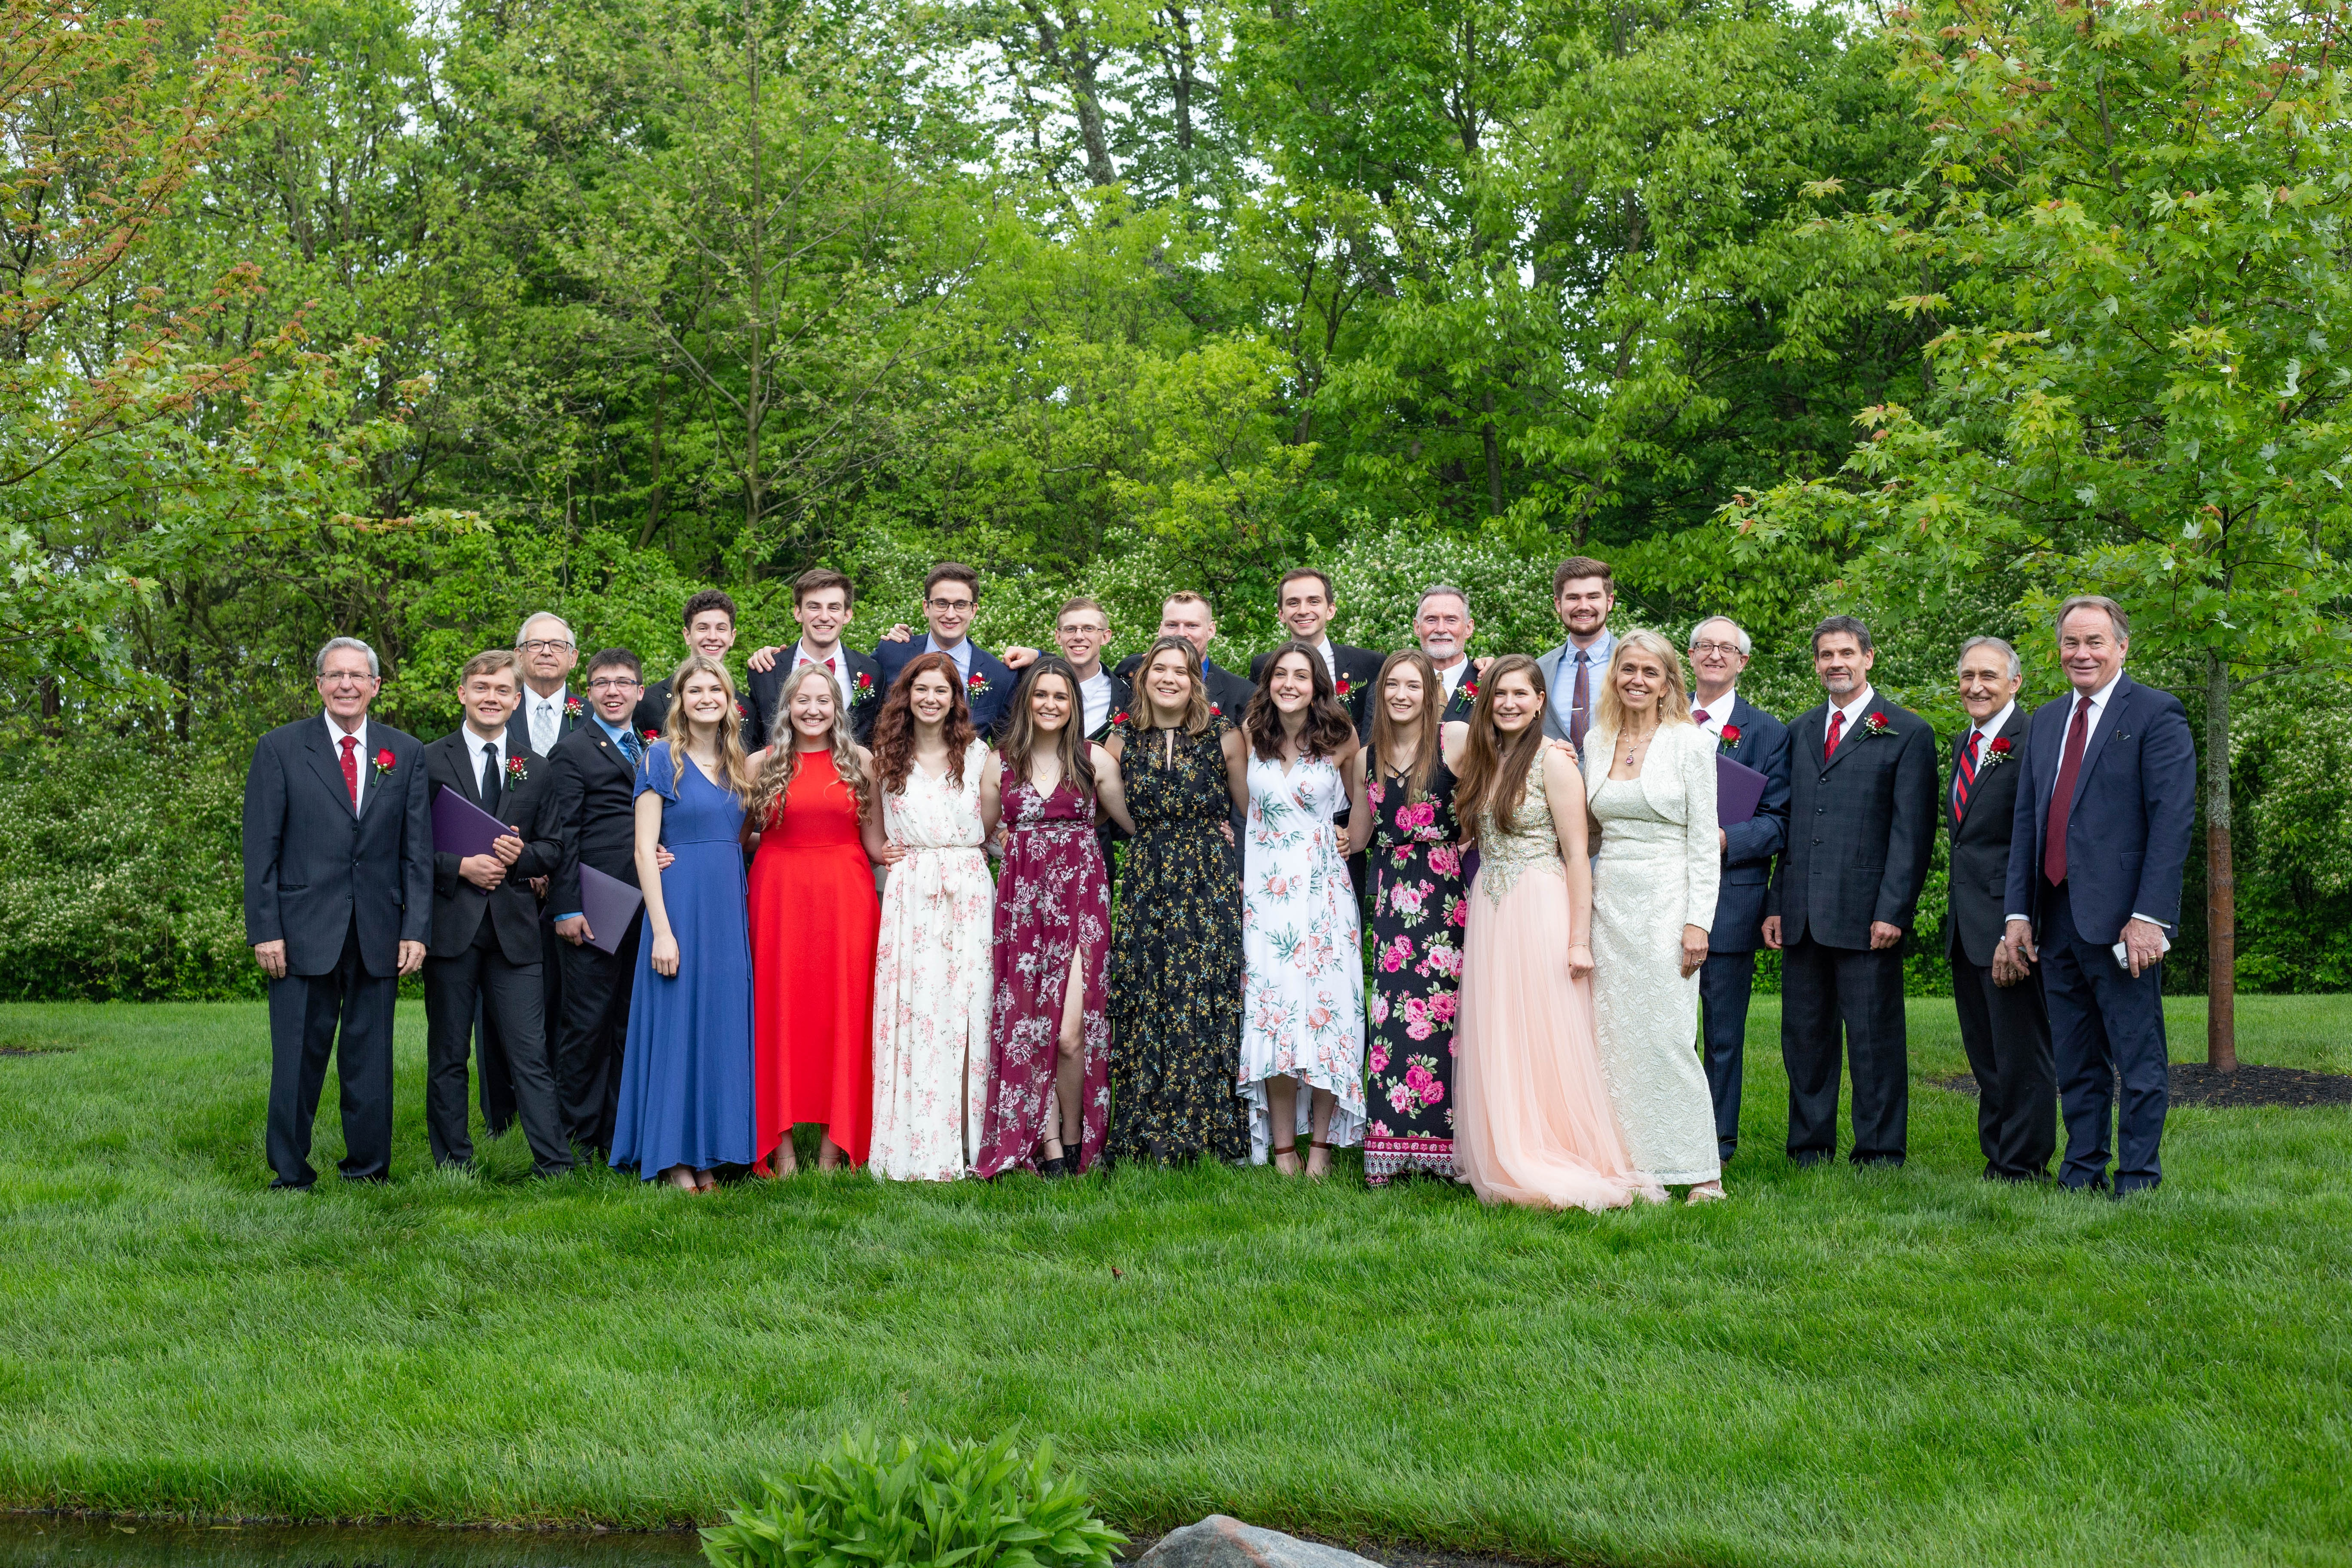 The ABC class of 2021 and faculty members smile after commencement